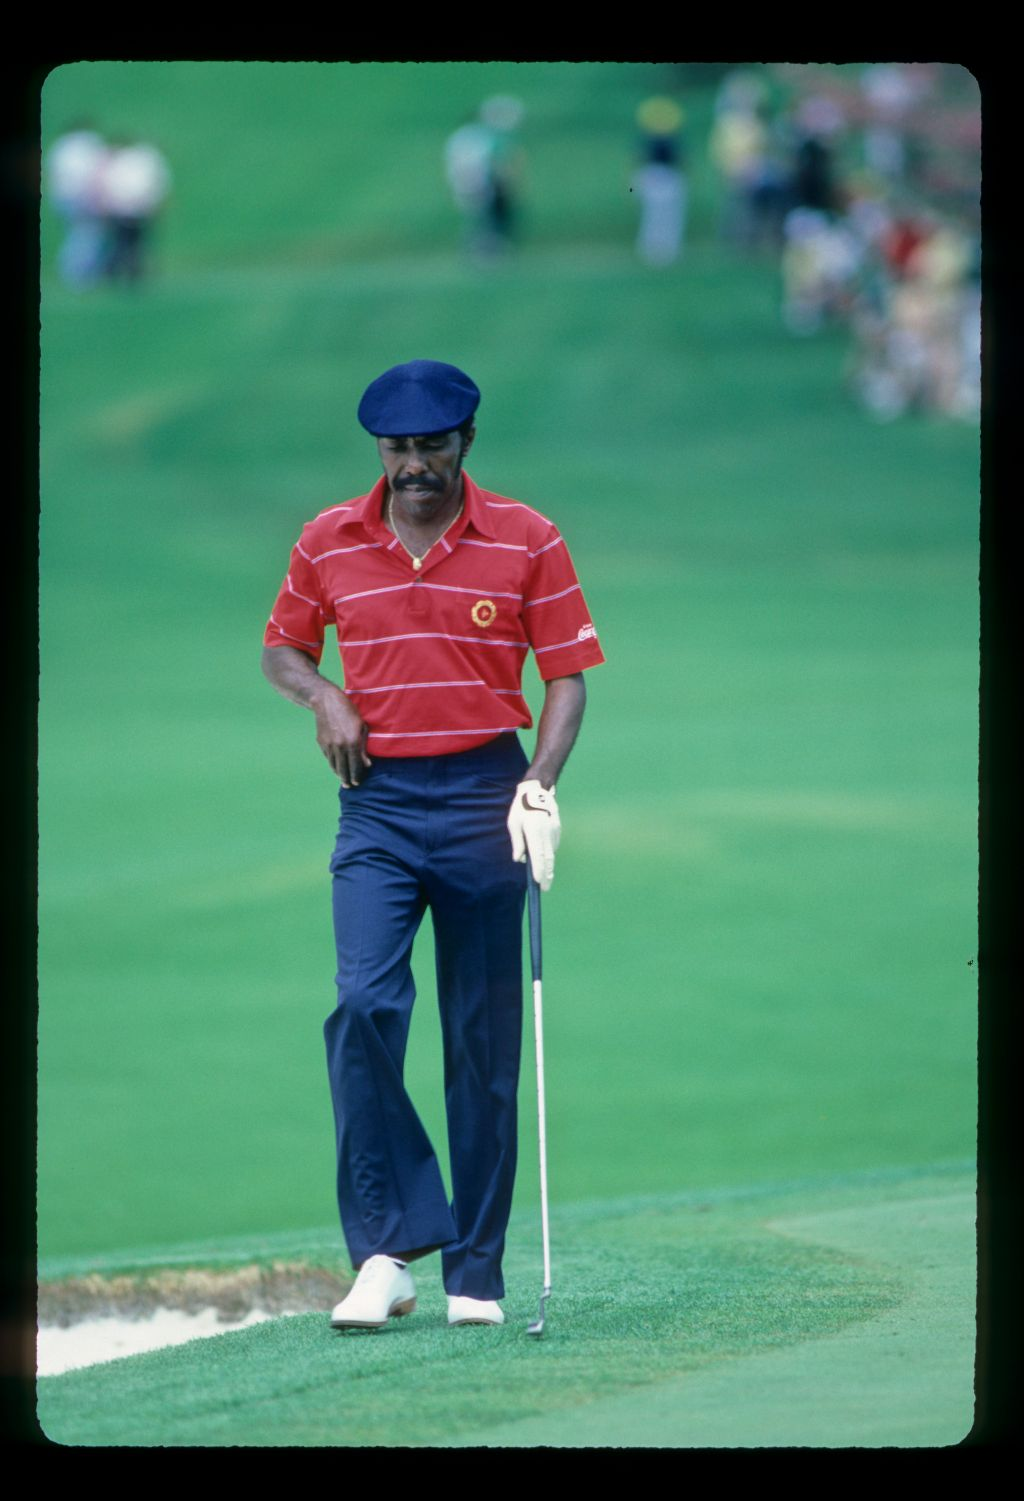 Calvin Peete stalking the green during the 1984 Masters